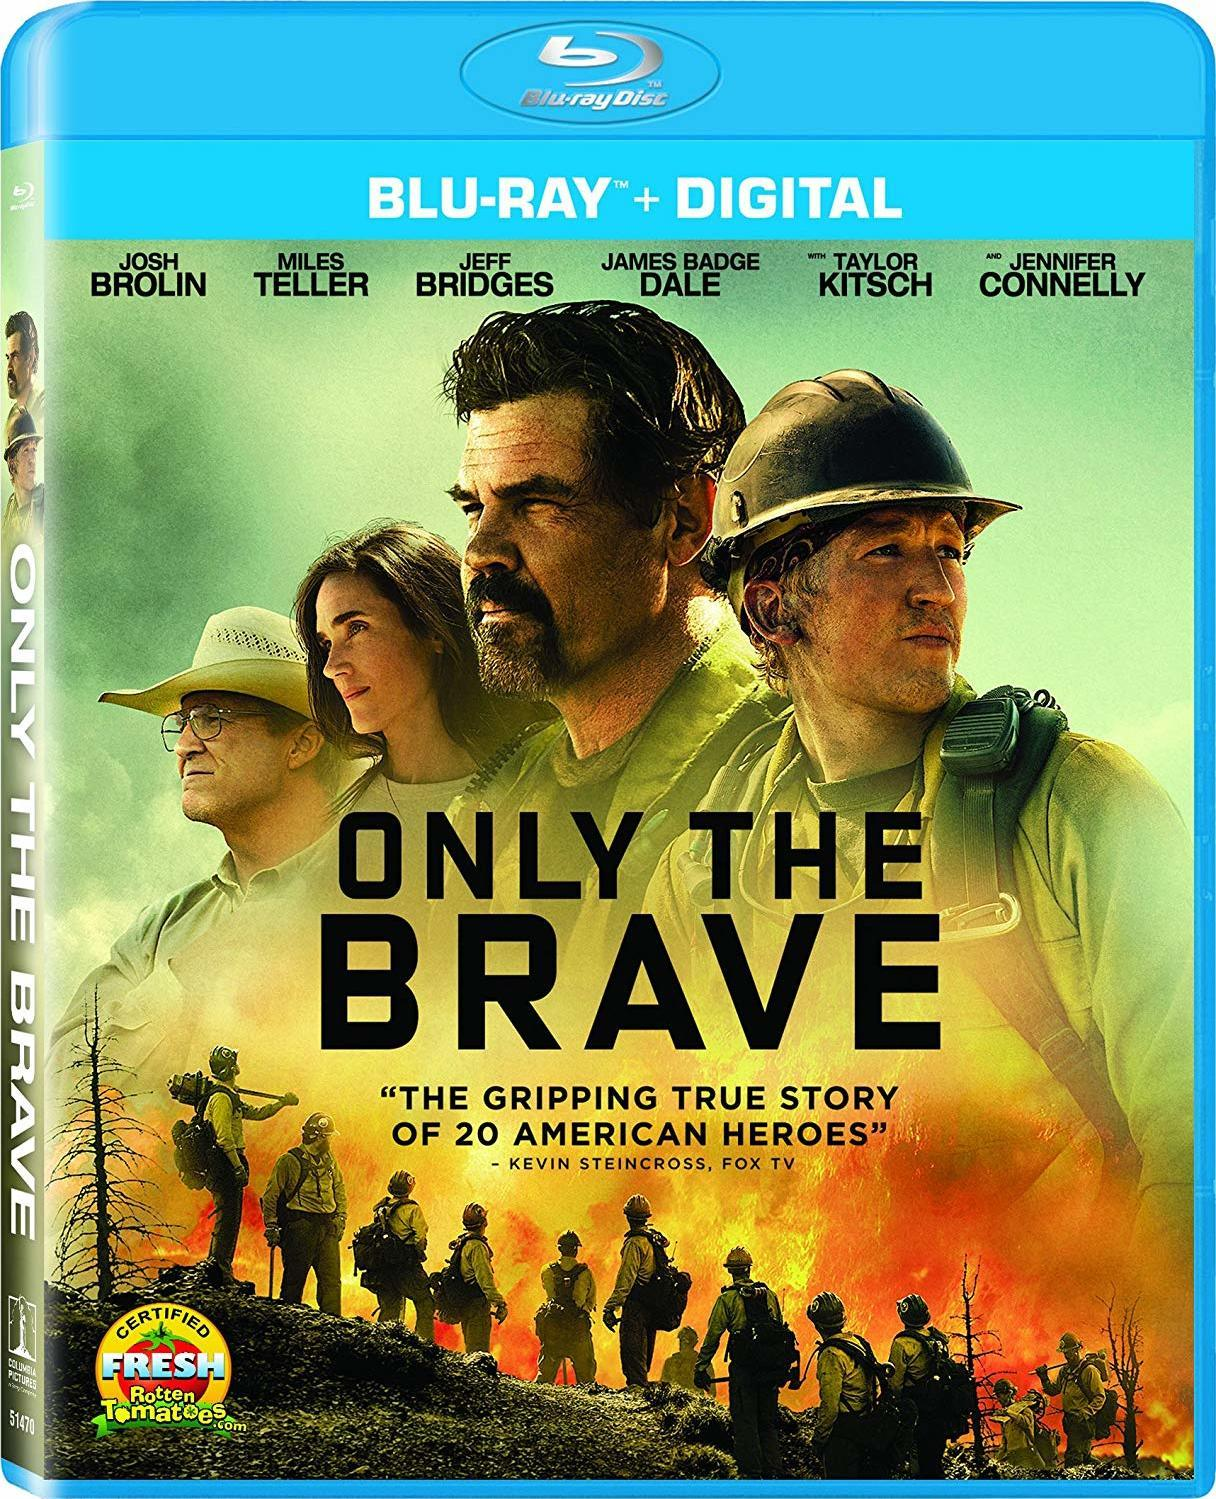 Only the Brave (2017) Blu-ray